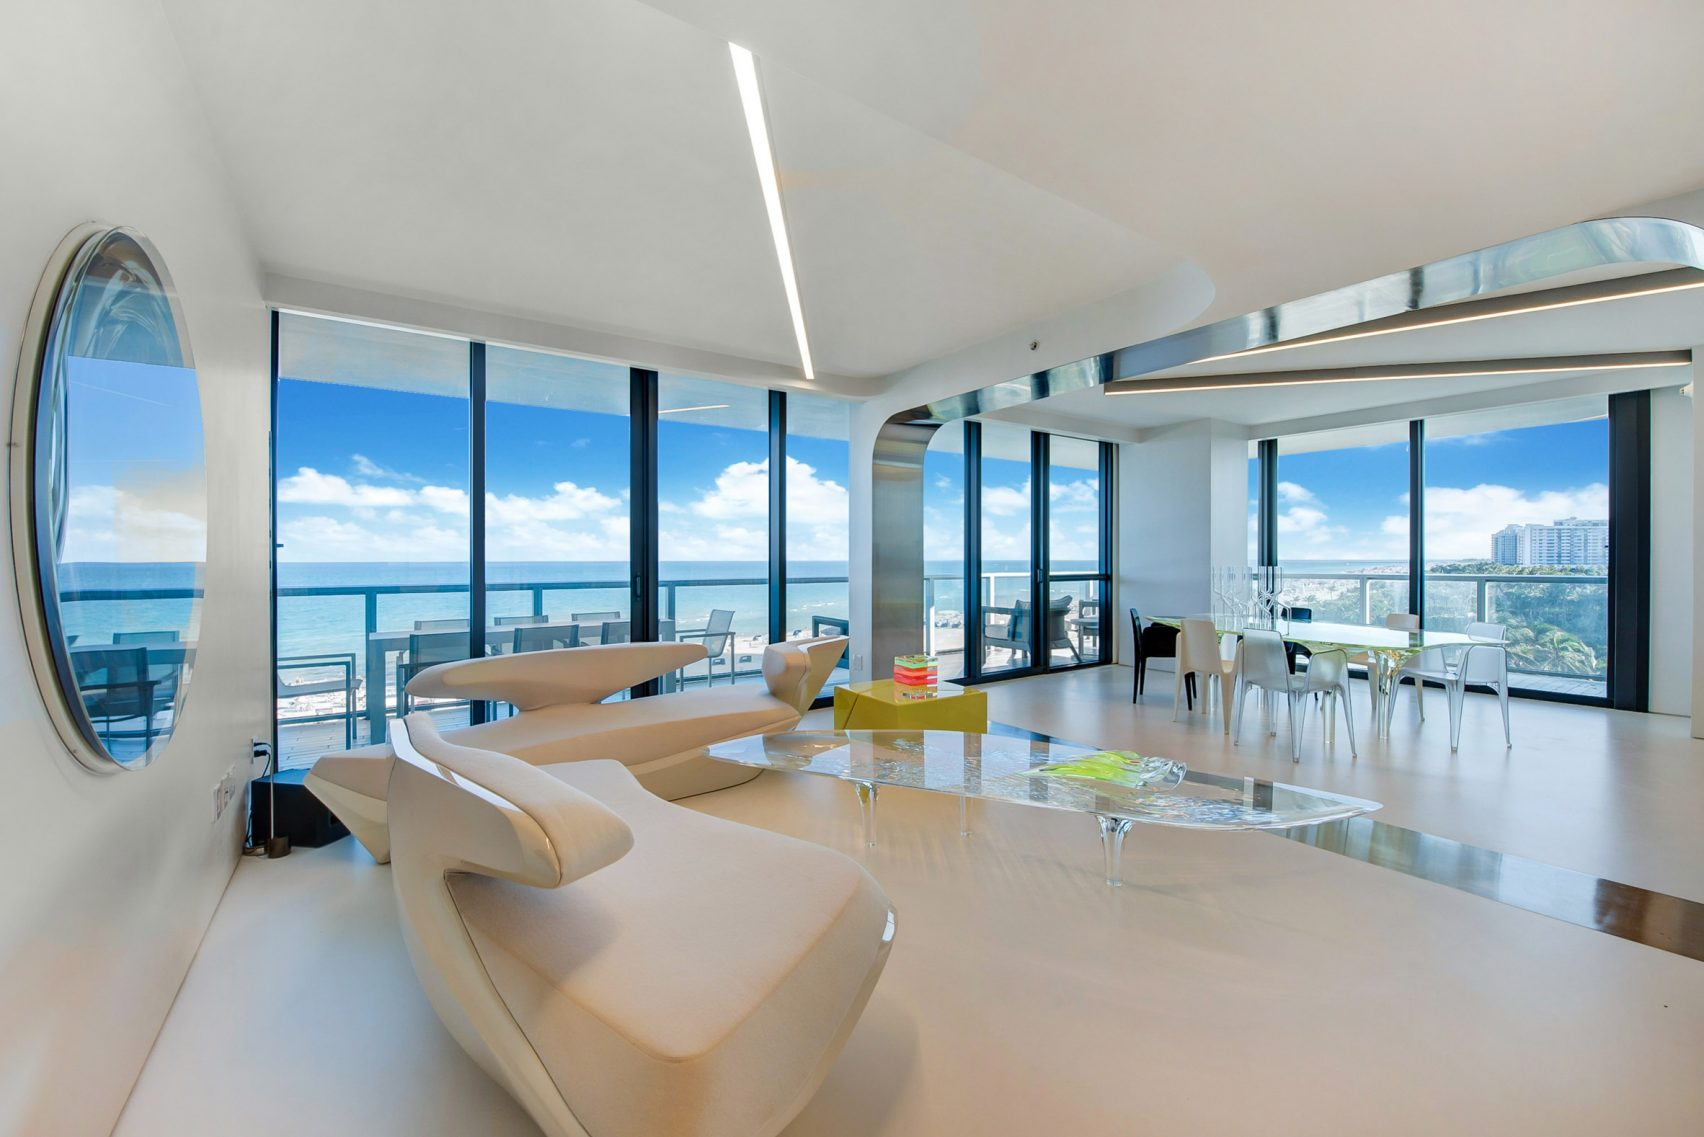 design, luxury, penthouse, american, miami, modern, zaha hadi, beach, architect, villa, billionaire, house, usa, livingroom, window